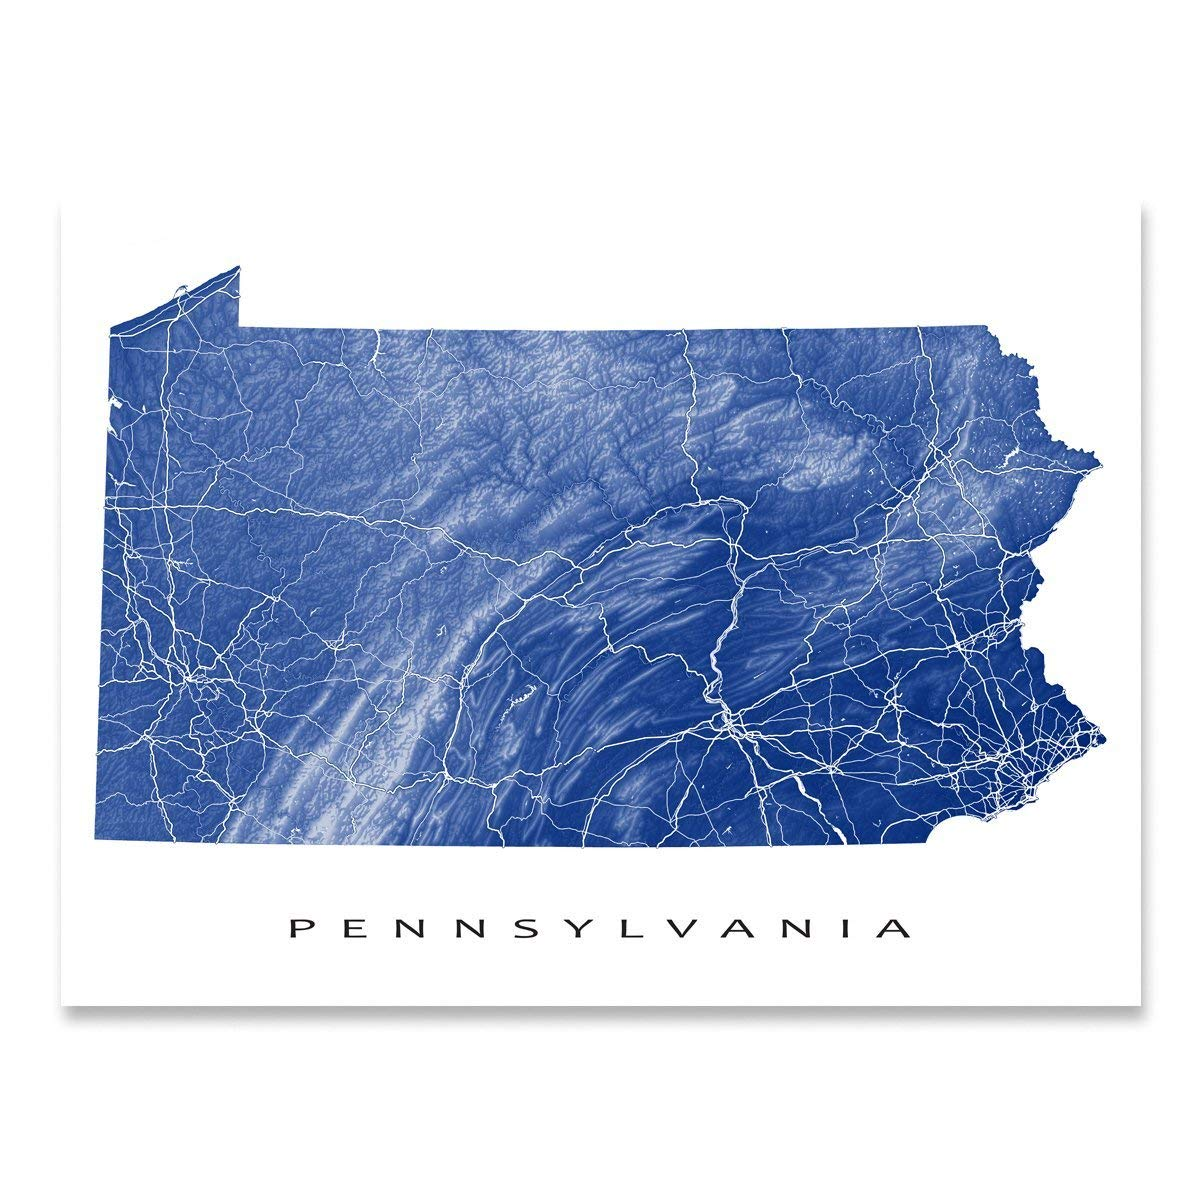 Pennsylvania Map Art Print, PA State Artwork, USA Wall Poster on pennsylvania colors, pittsburgh map usa, ohio map usa, clemson university map usa, colorado map usa, mississippi map usa, pittsburgh pennsylvania usa, iowa map usa, pennsylvania on map, wisconsin map usa, oregon map usa, new york on map of usa, pennsylvania statehood, nebraska map usa, oklahoma map usa, indiana map usa, minnesota map usa, pennsylvania caves map locations, connecticut map usa, michigan map usa,